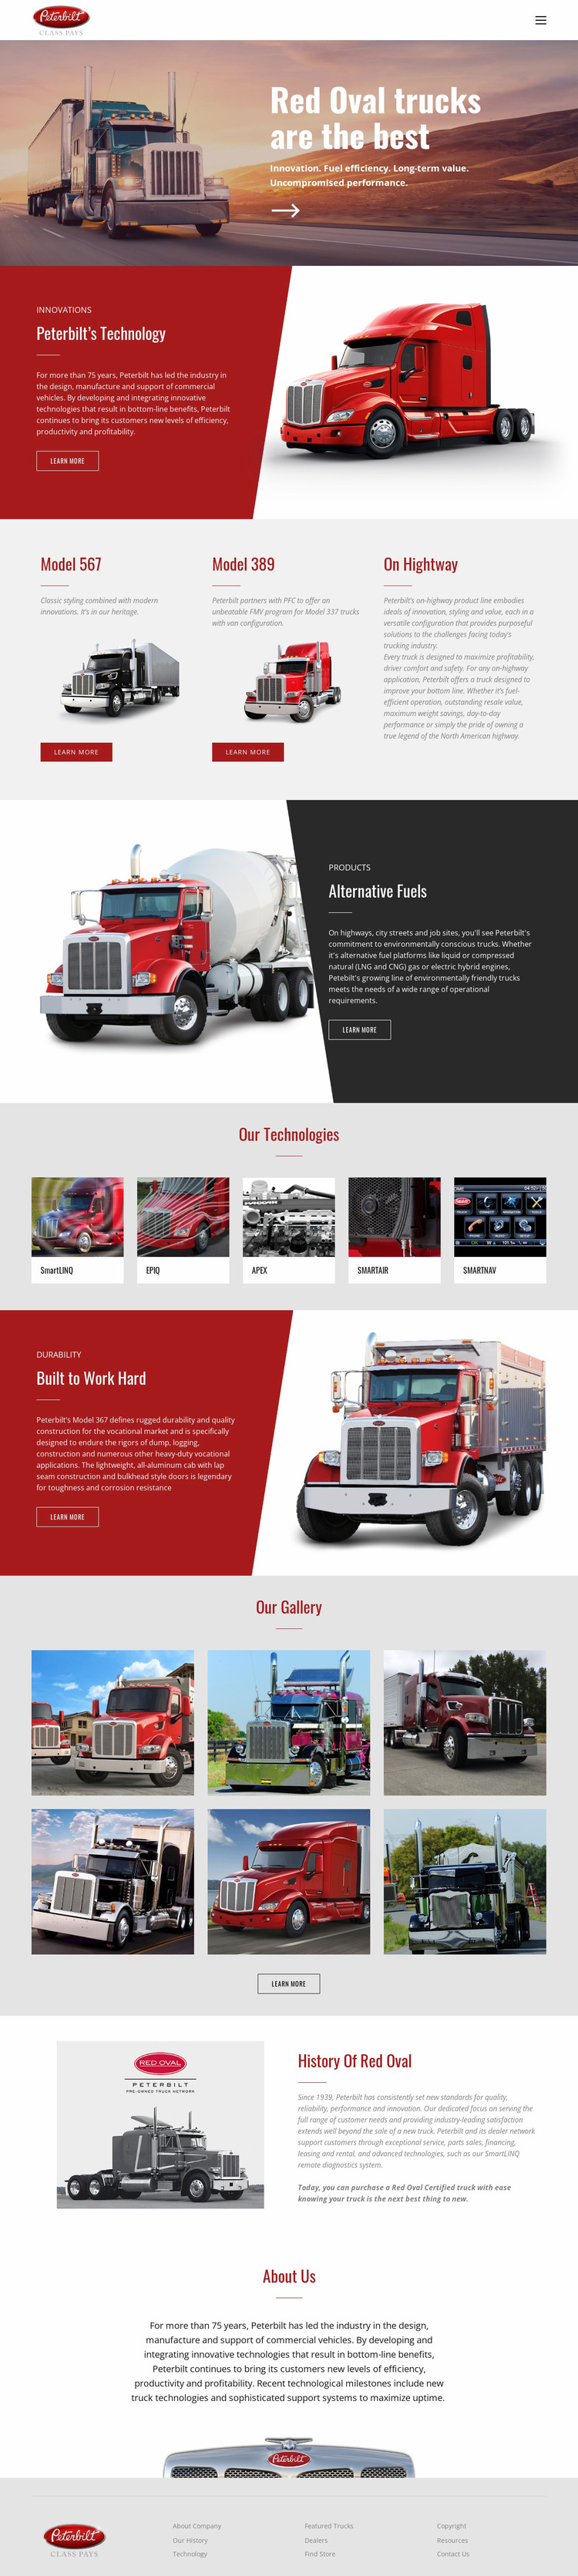 Red oval truck transportaion Website Mockup